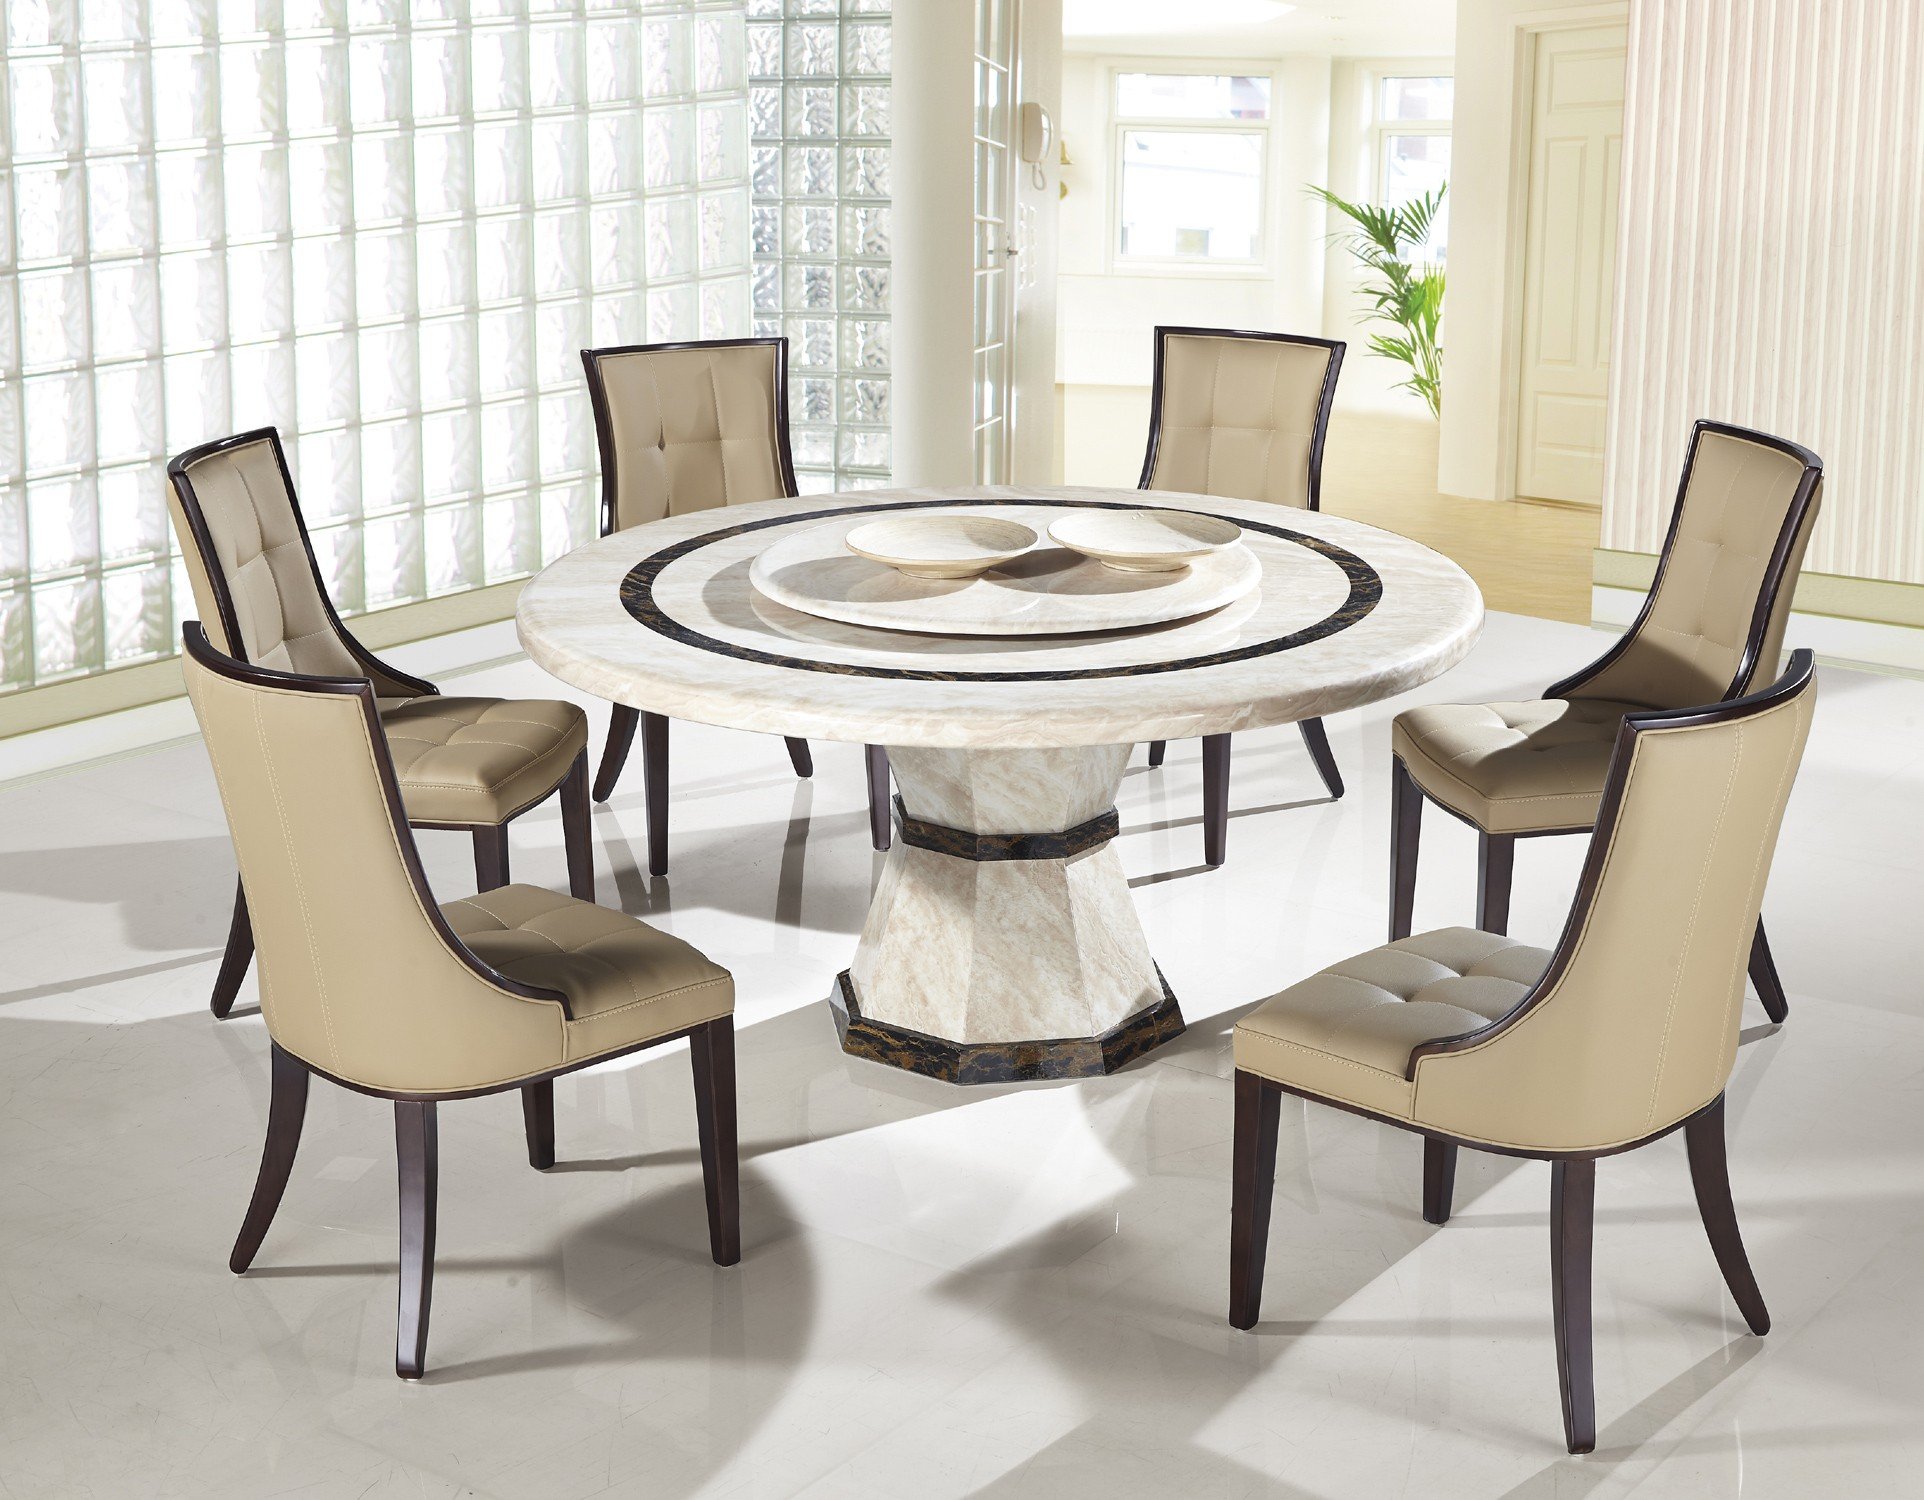 Modern round dining set shop for affordable home for Dining room sets with round tables